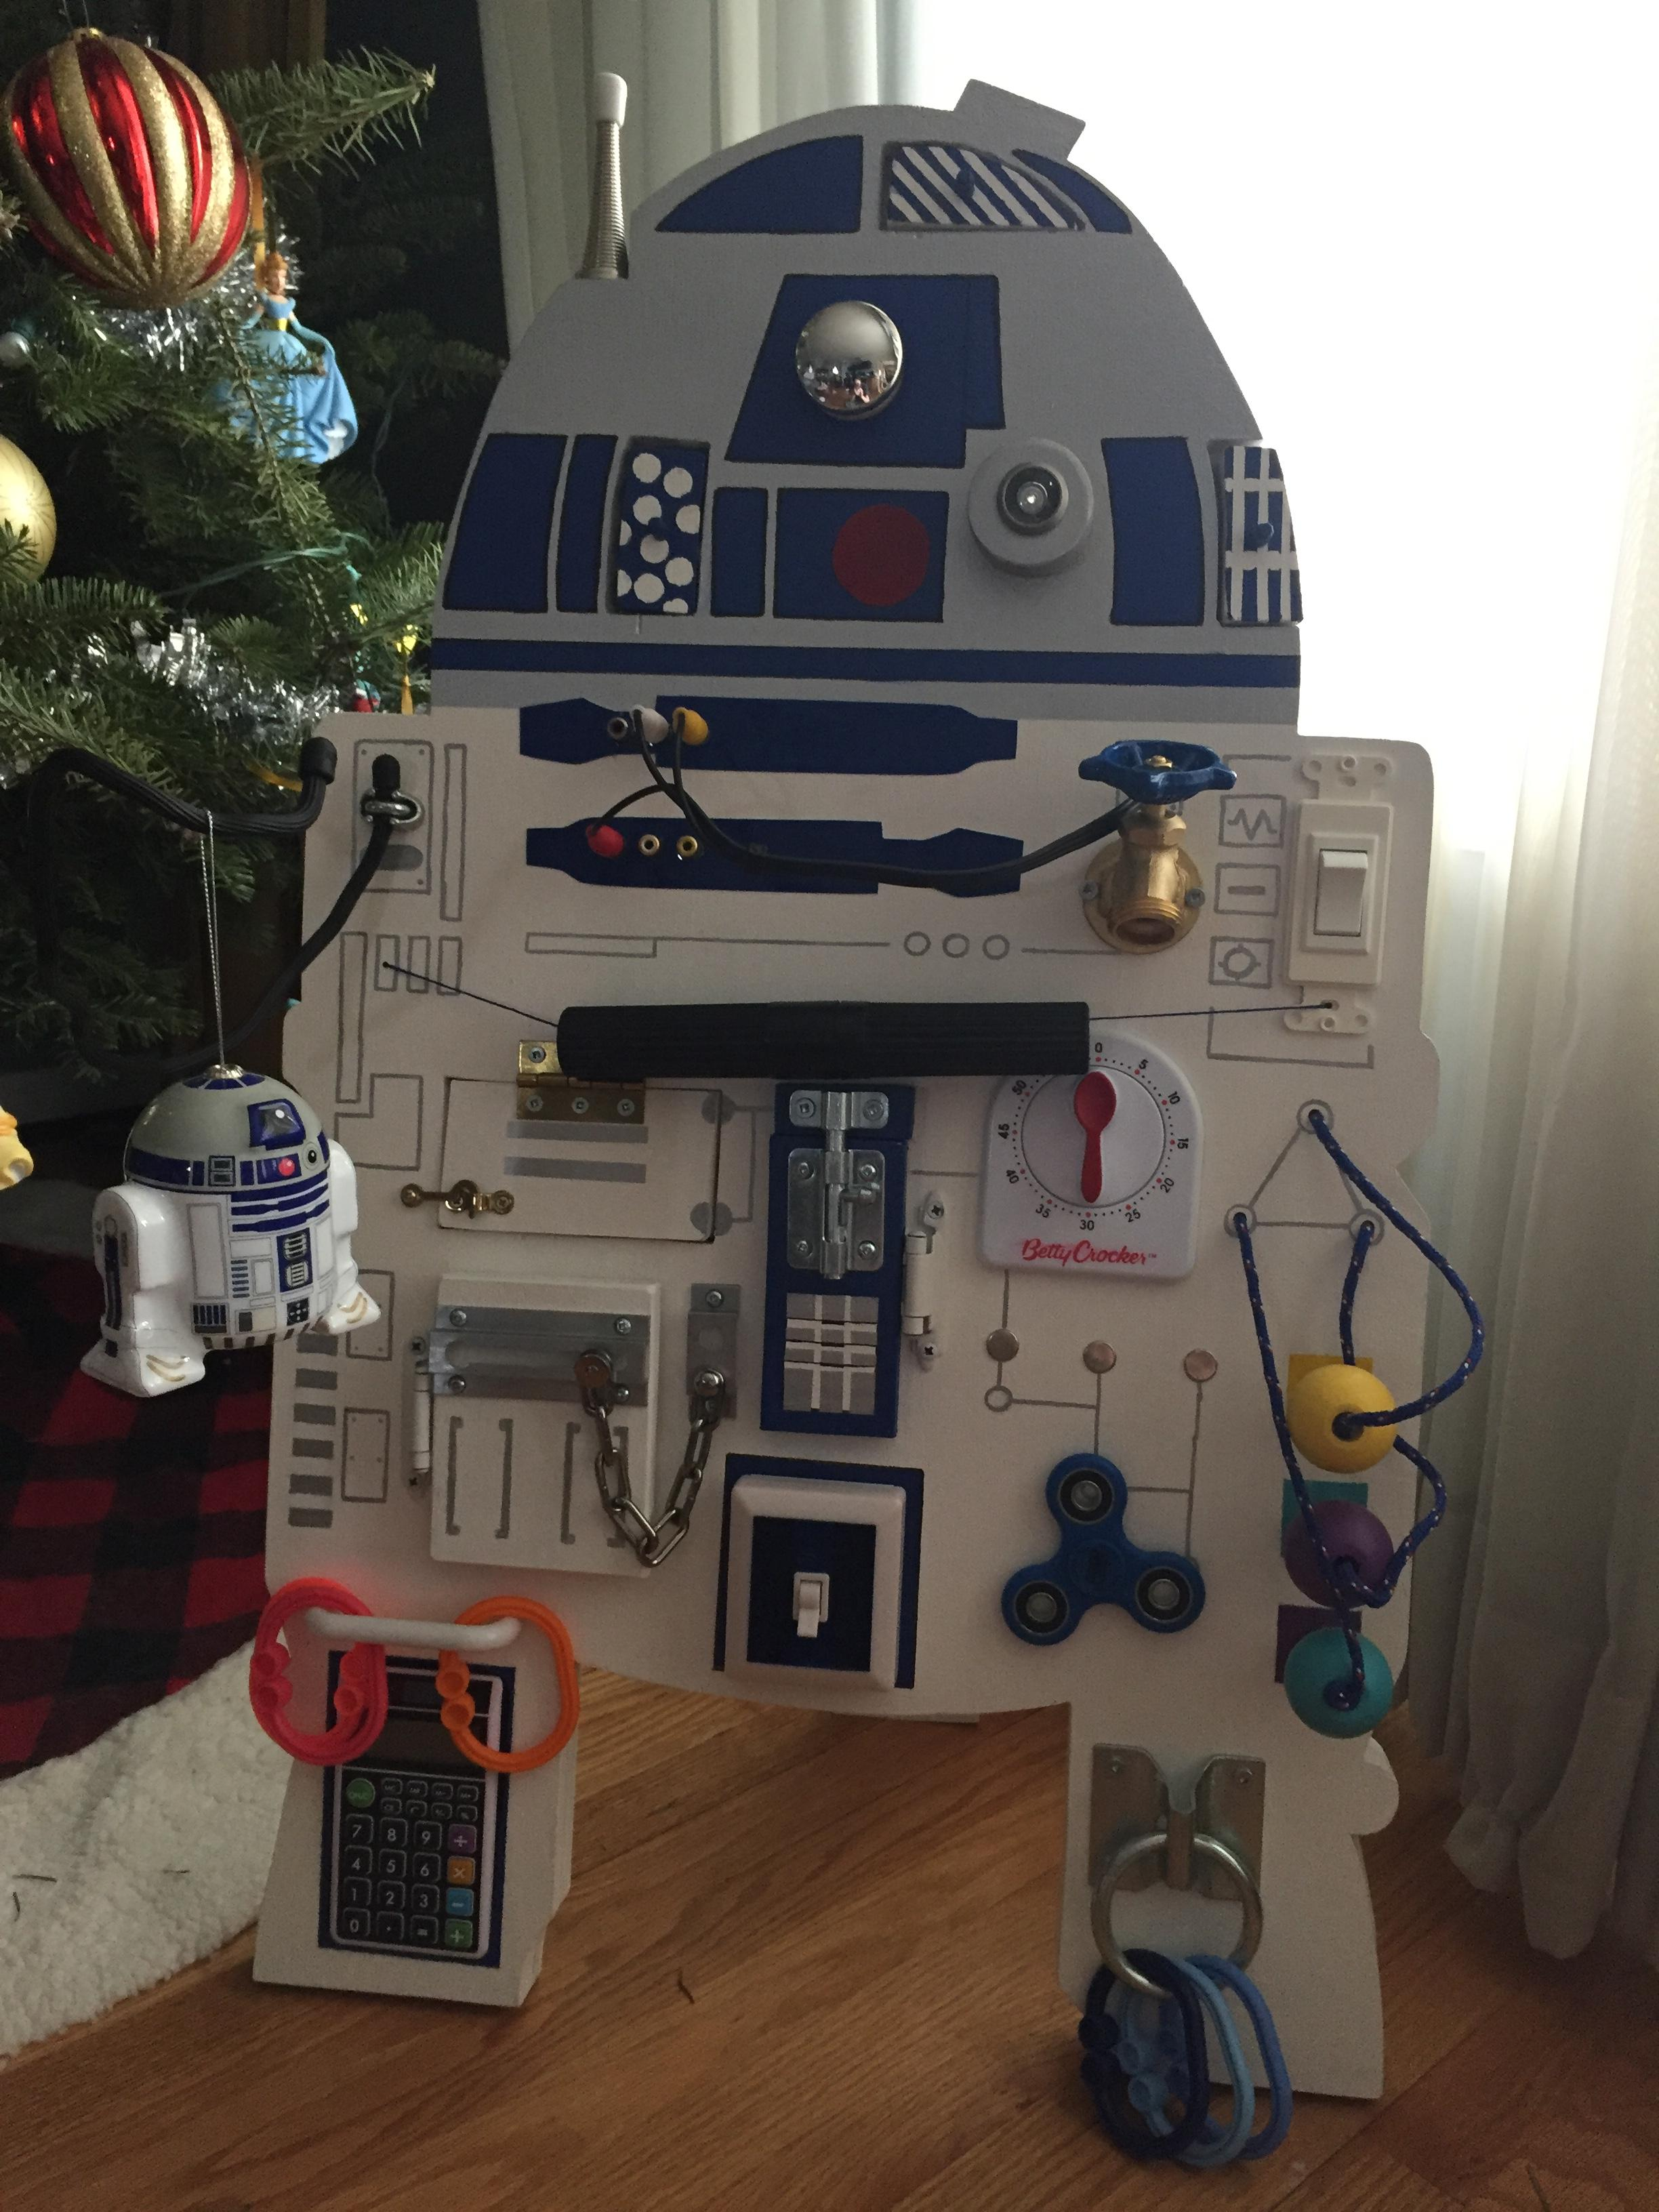 I built an R2D2 busy board for my daughter